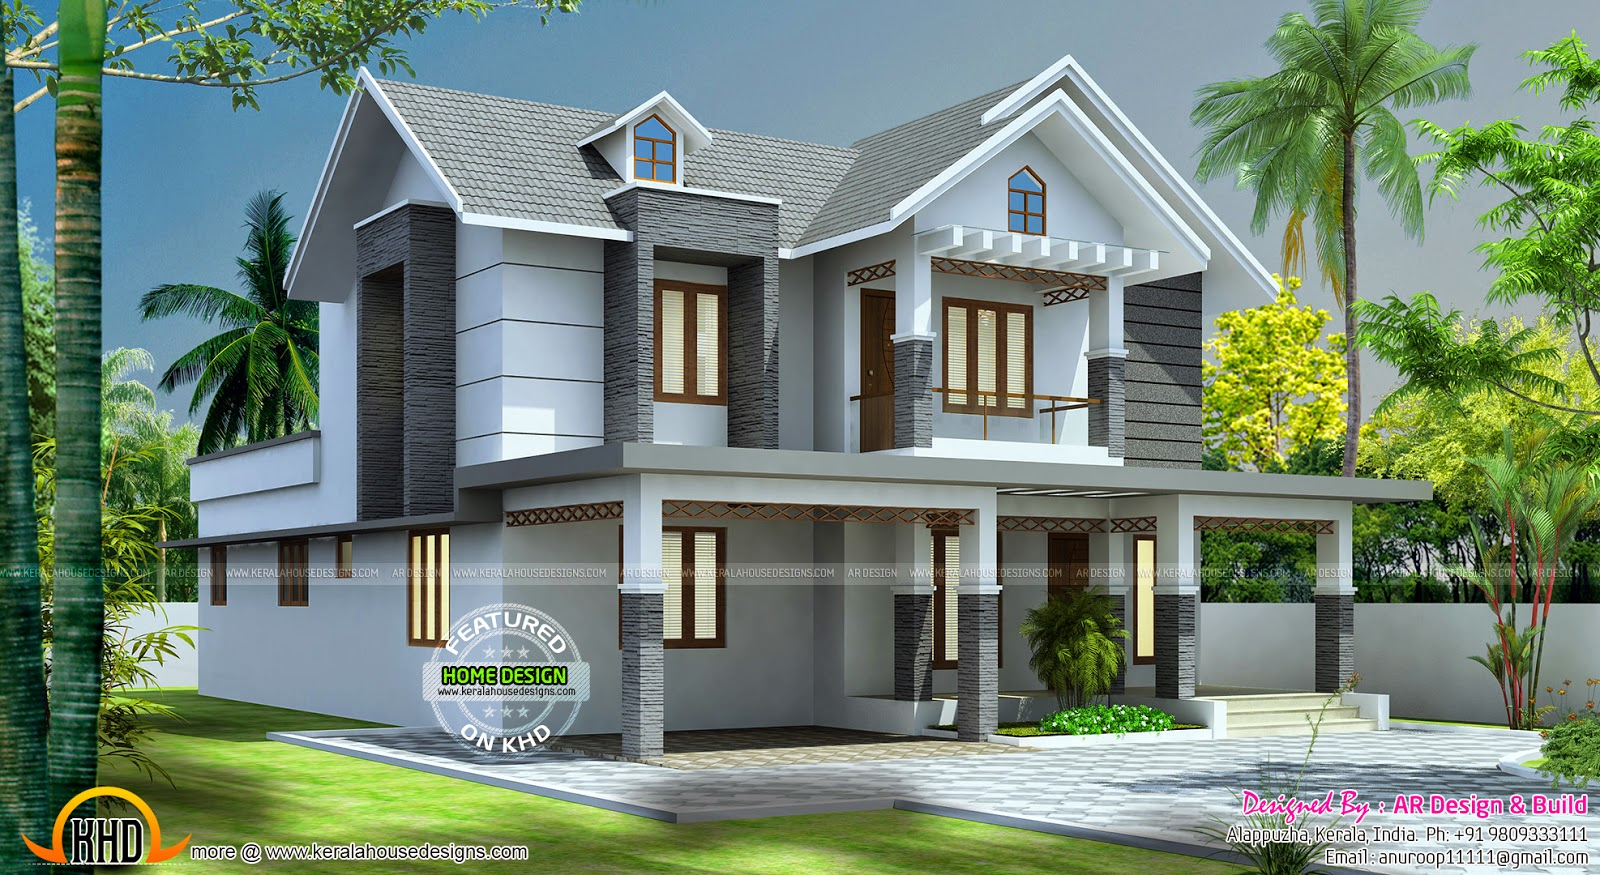 Beautiful 2545 sq ft home design kerala home design and for Beautiful home design